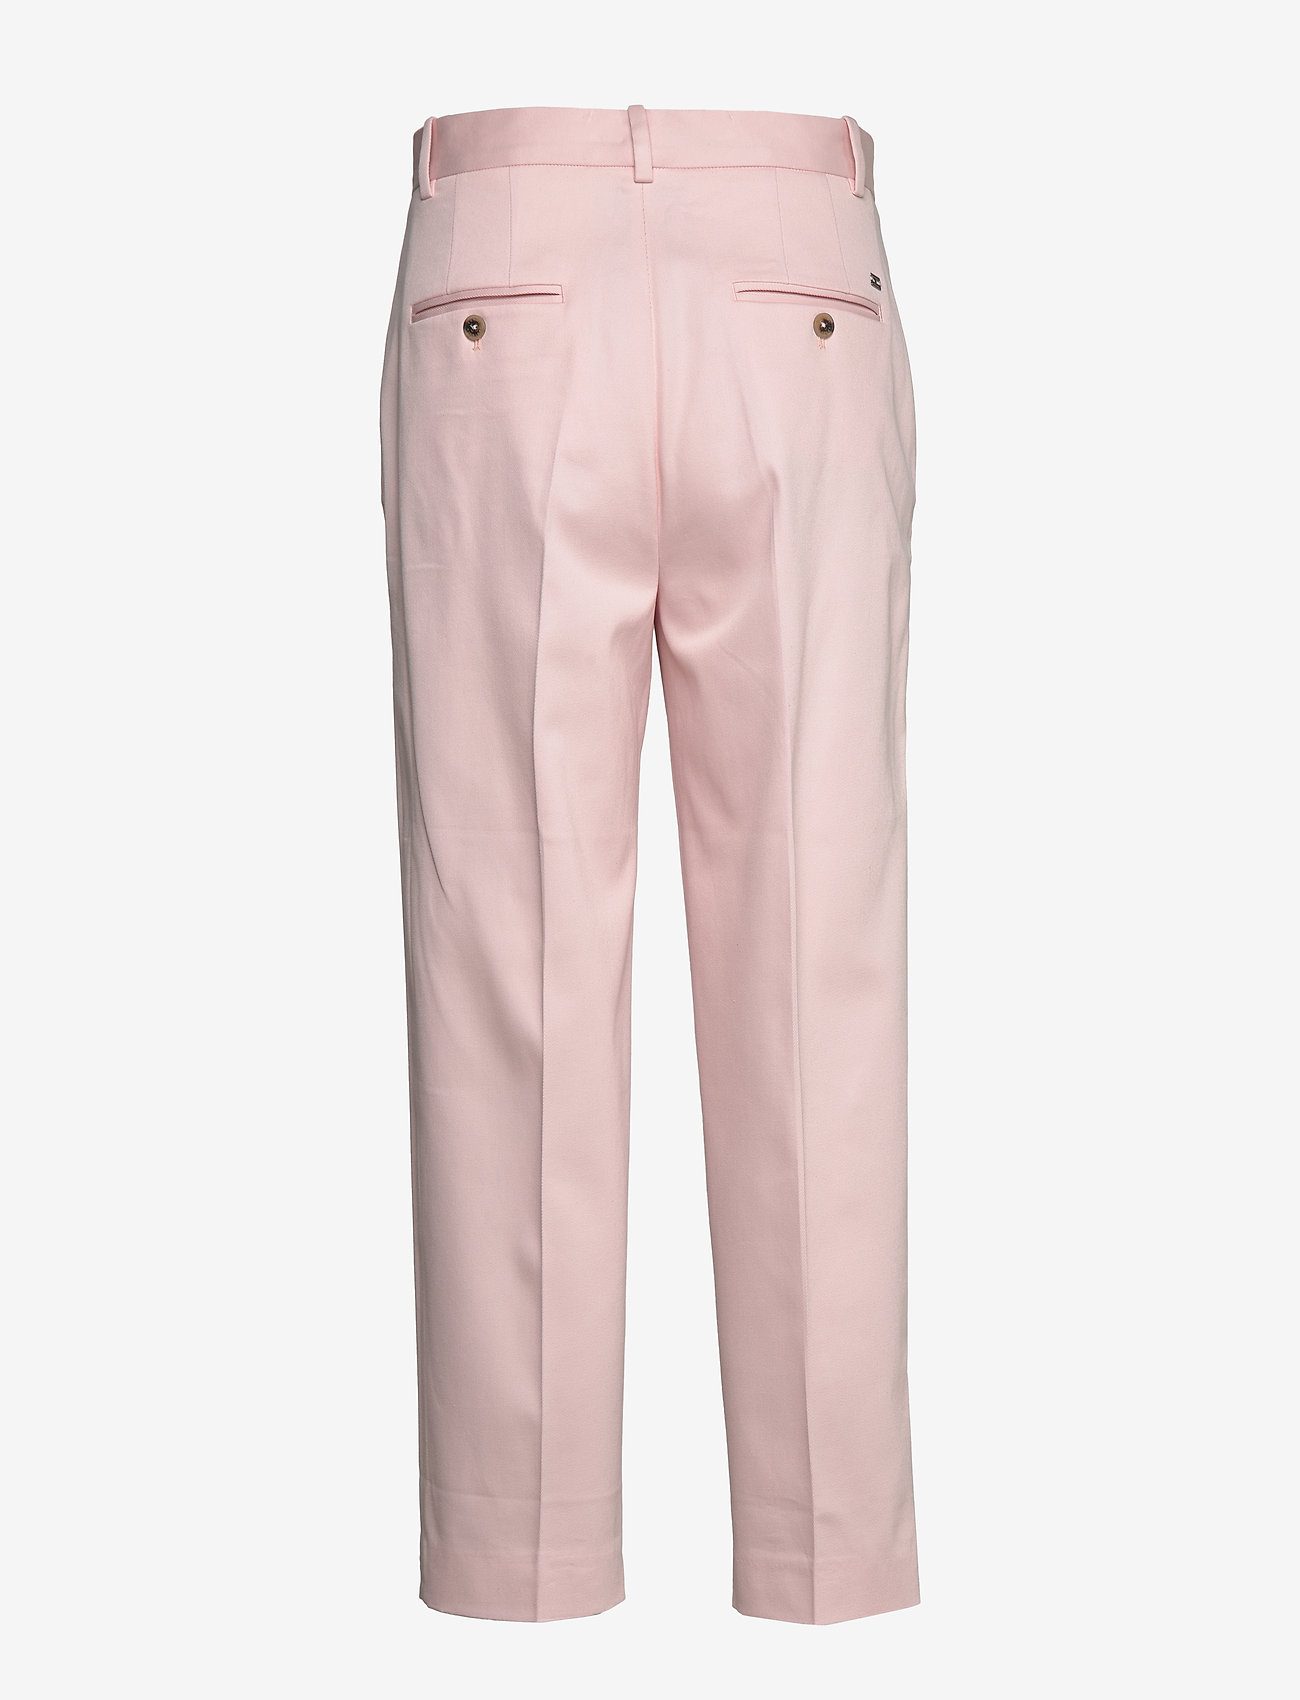 Tommy Hilfiger - COTTON PASTEL TAPERED PANT - straight leg trousers - pale pink